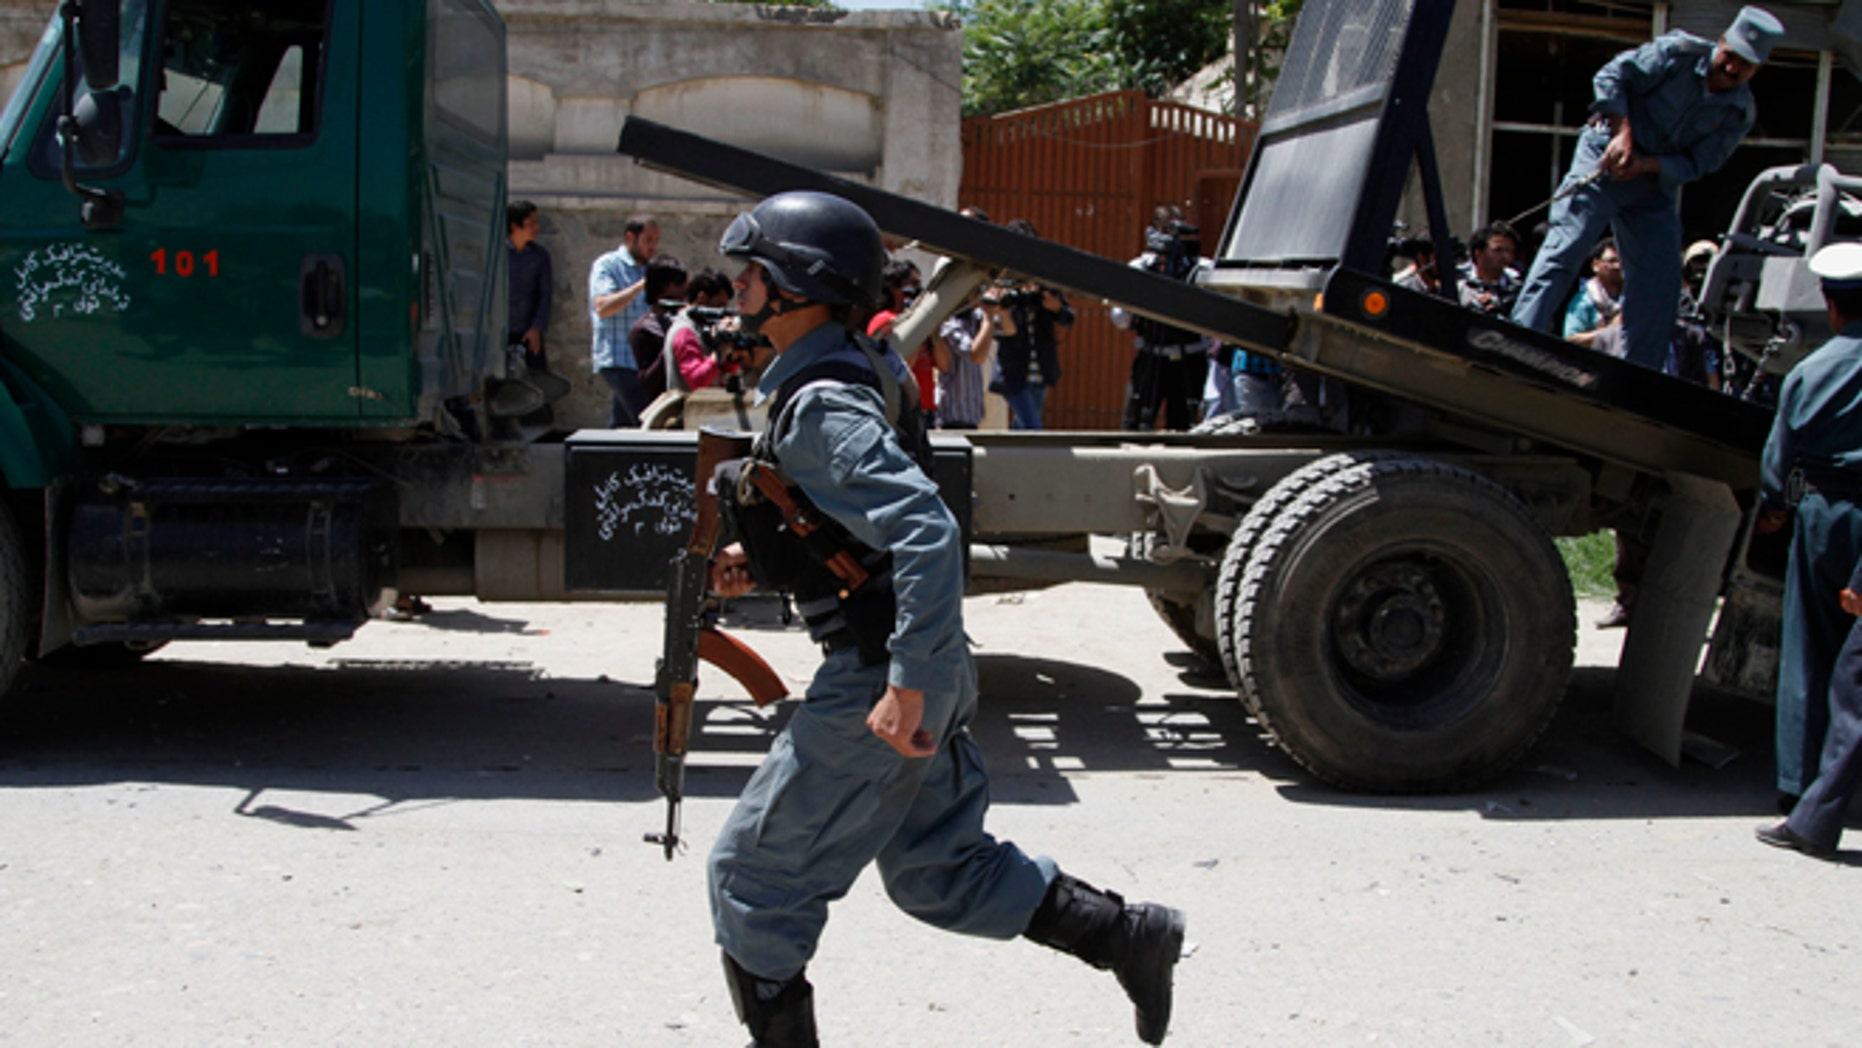 June, 18, 2013: An Afghan police officer runs at the site of a blast near the Afghan Independent Human Rights Commission in Kabul, Afghanistan. The large bomb exploded in the Afghan capital on Tuesday as the international military coalition hands over responsibility for fighting the Taliban insurgency to the nascent national army and police they have been training.